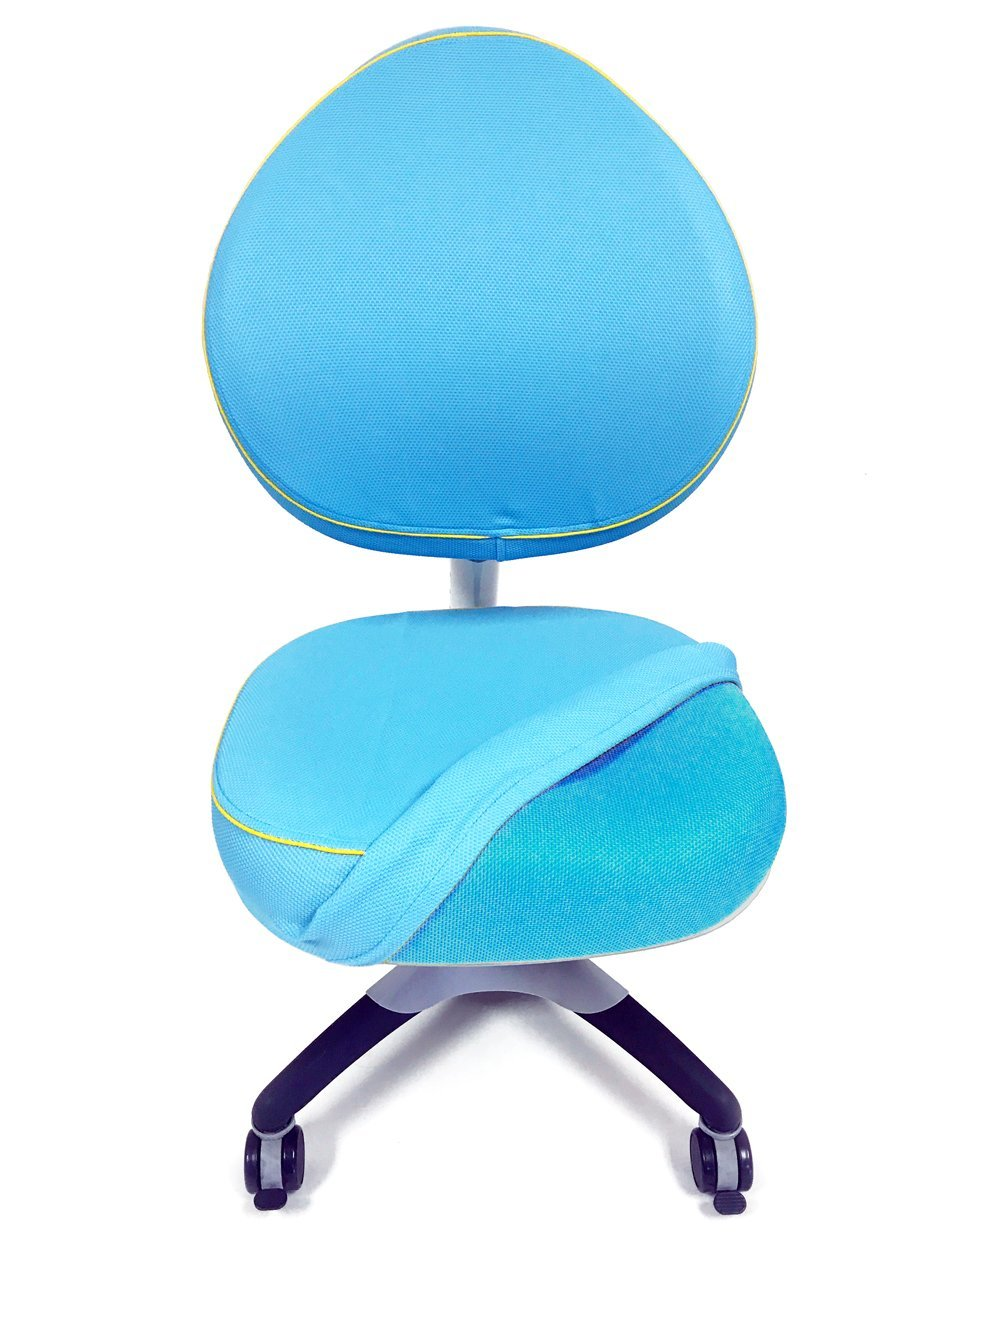 ApexDesk Little Soleil Series Soft, Removable, Washable 2-Piece Seat/Backrest Cover for Children's Chair (Seat/Backrest Cover, Blue)